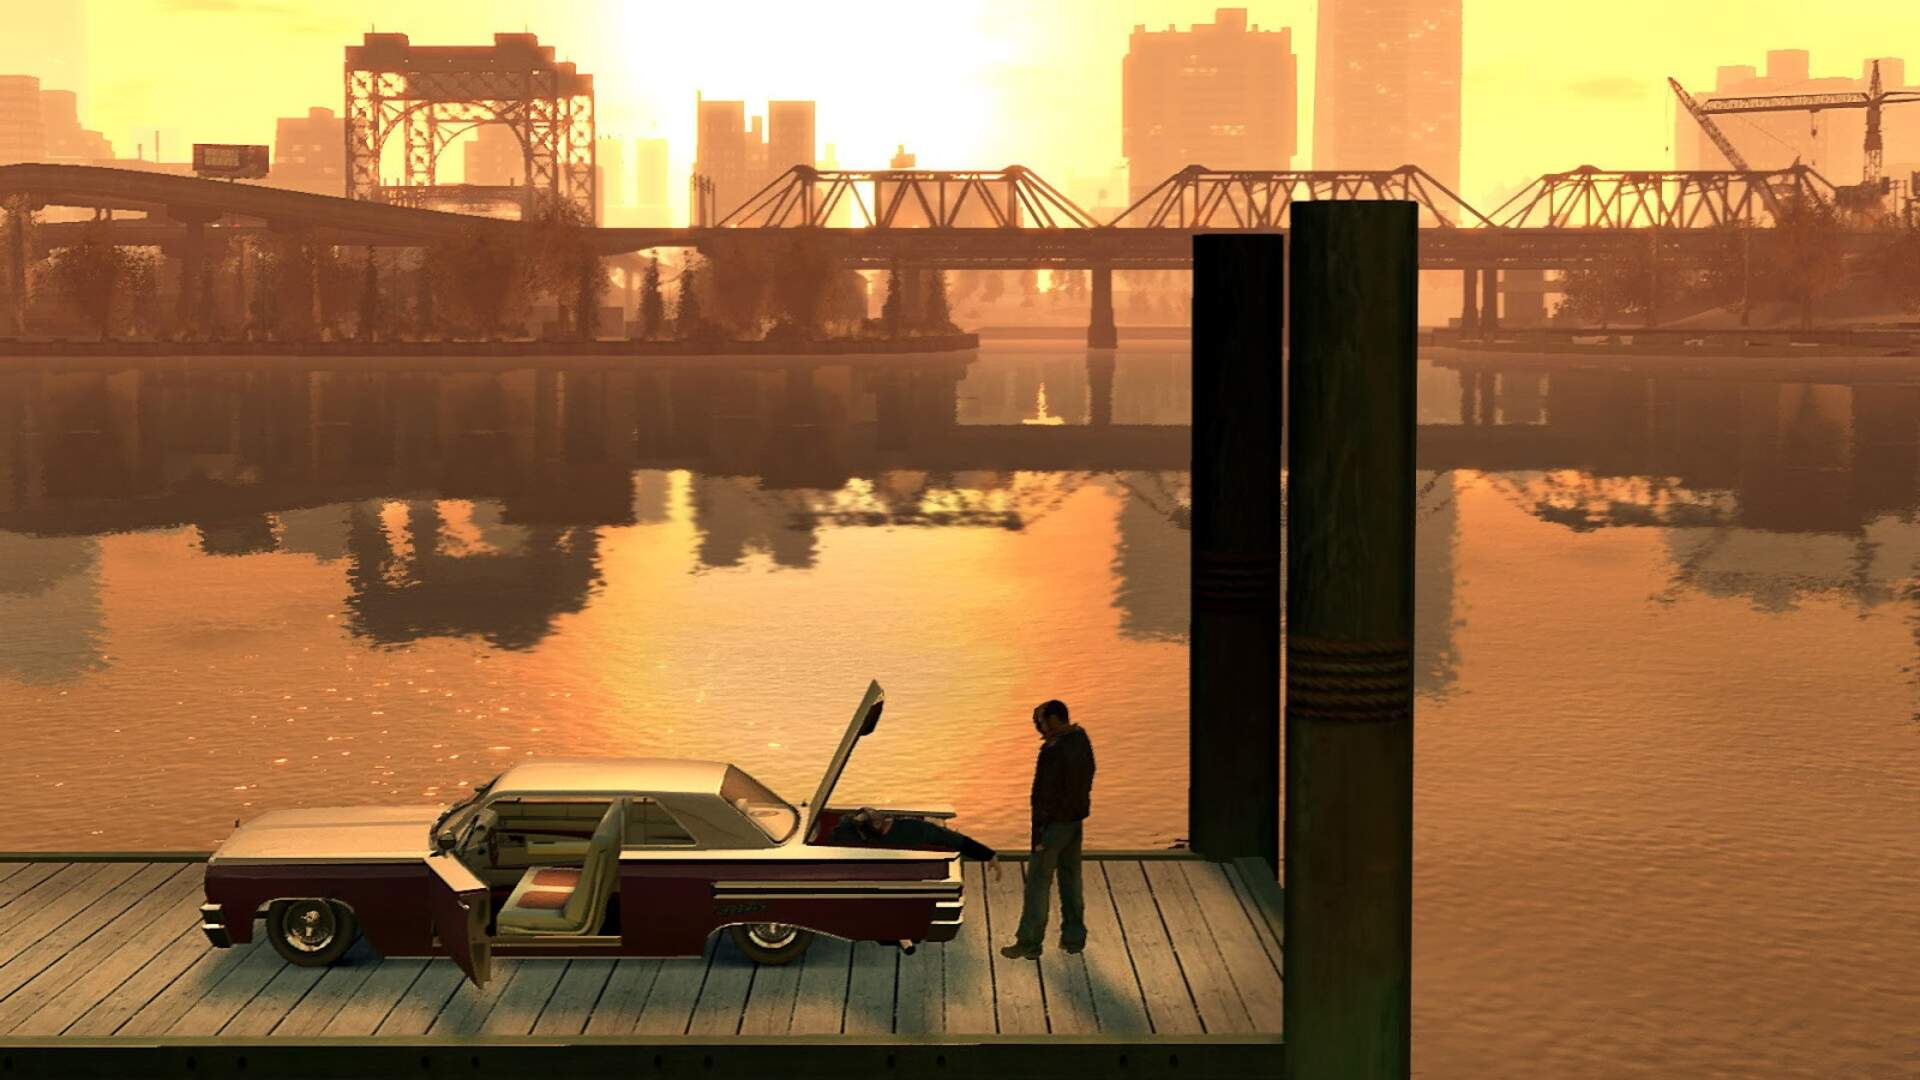 Grand Theft Auto 4 Returning to Steam, But Without Multiplayer